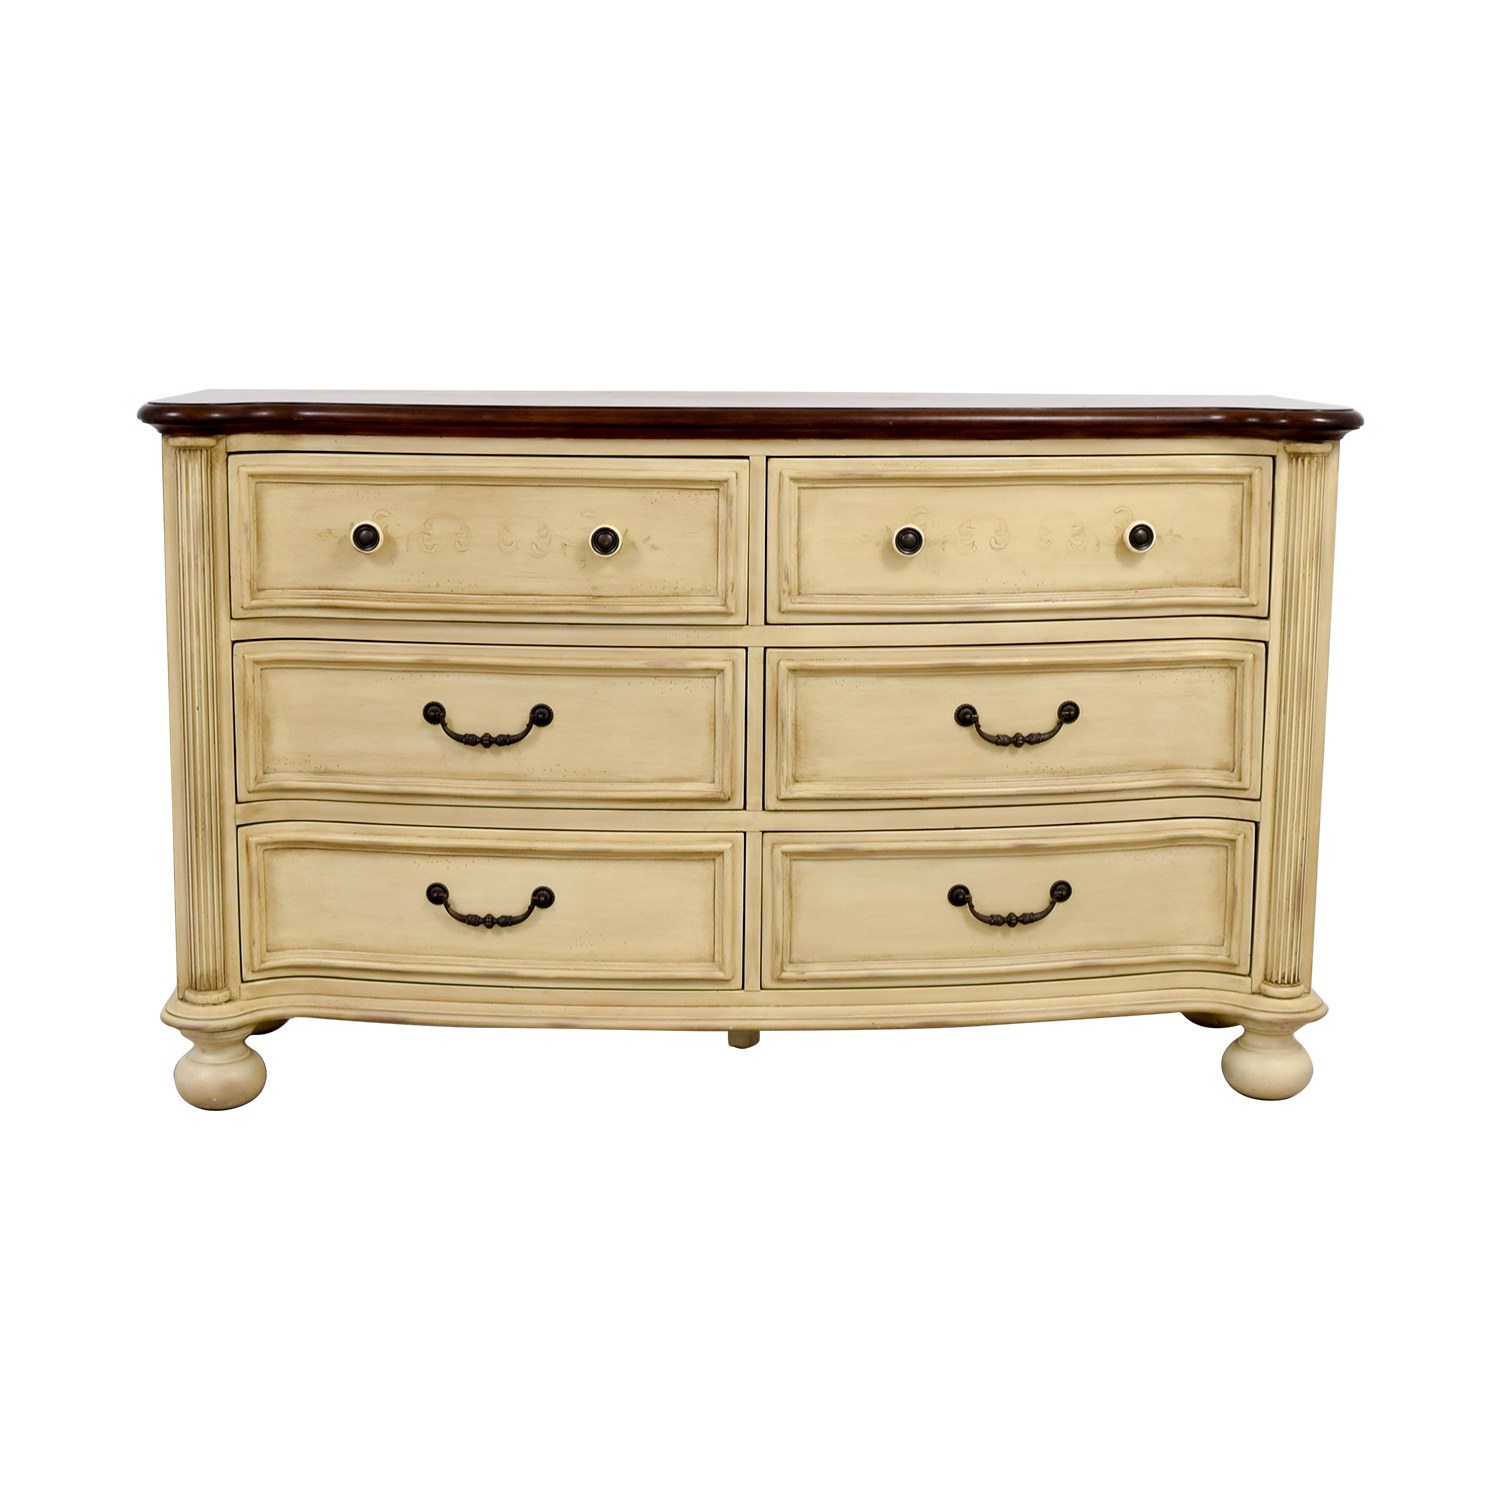 Hooker Furniture Hooker Furniture Six Drawer Dresser Price